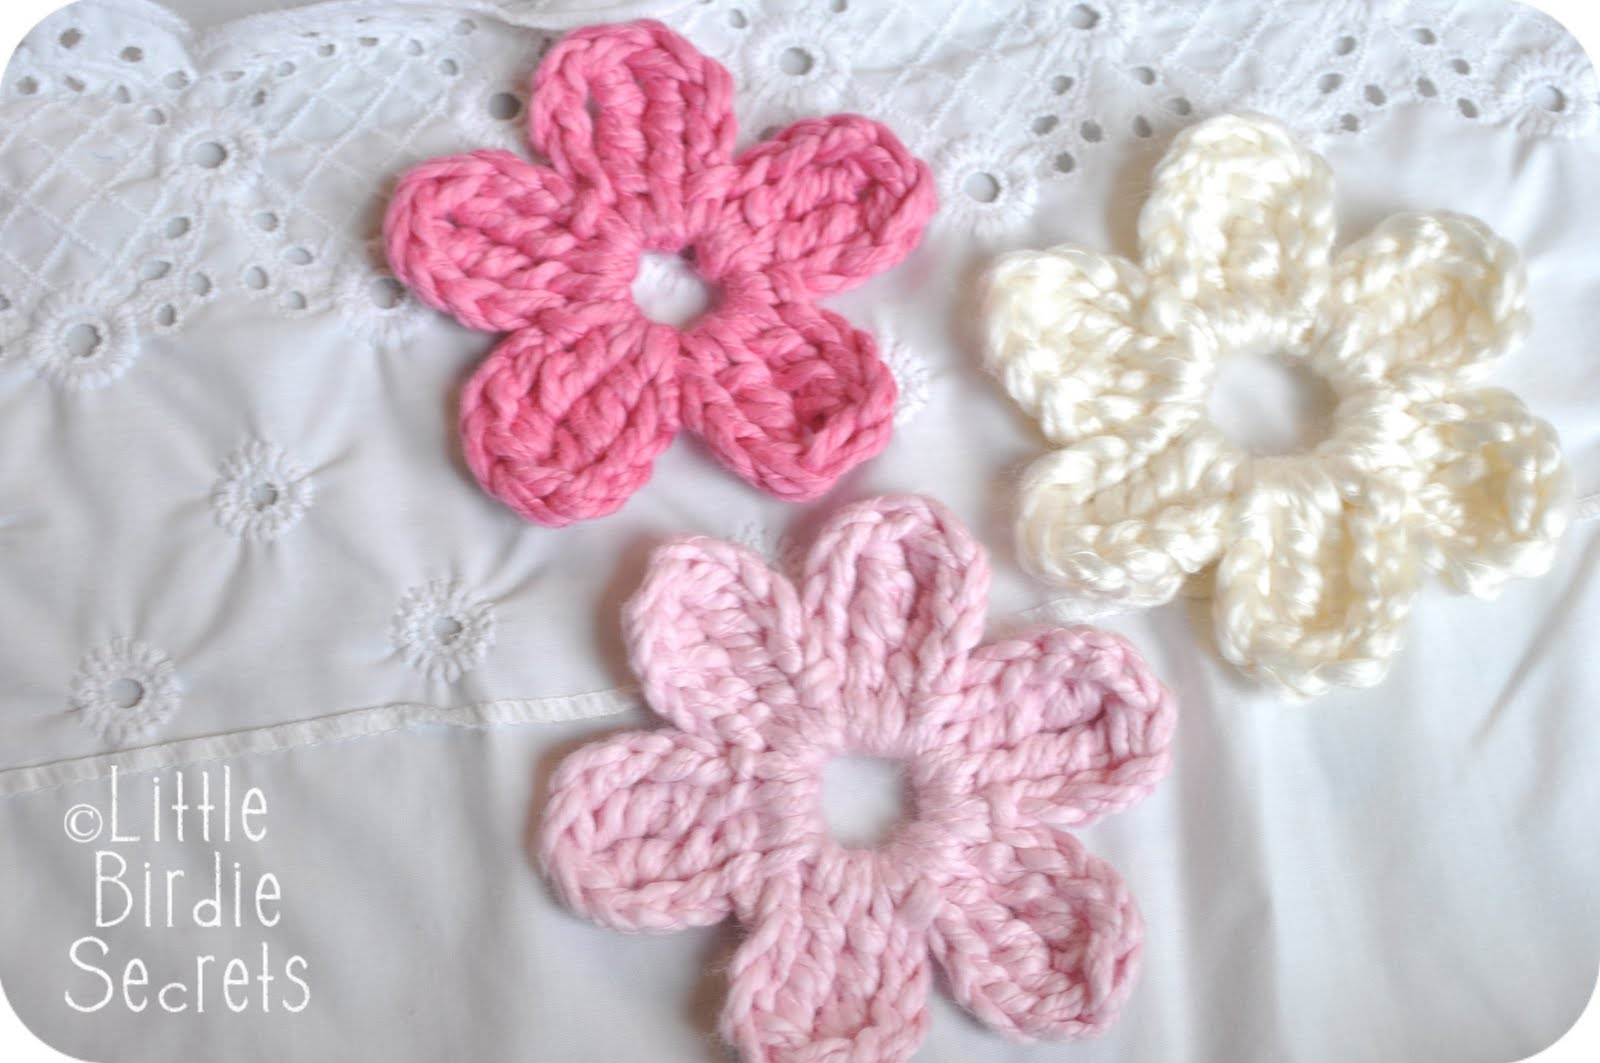 Patterns For Crochet : Crochet Pattern Central - Free Flower Crochet Pattern Link Directory